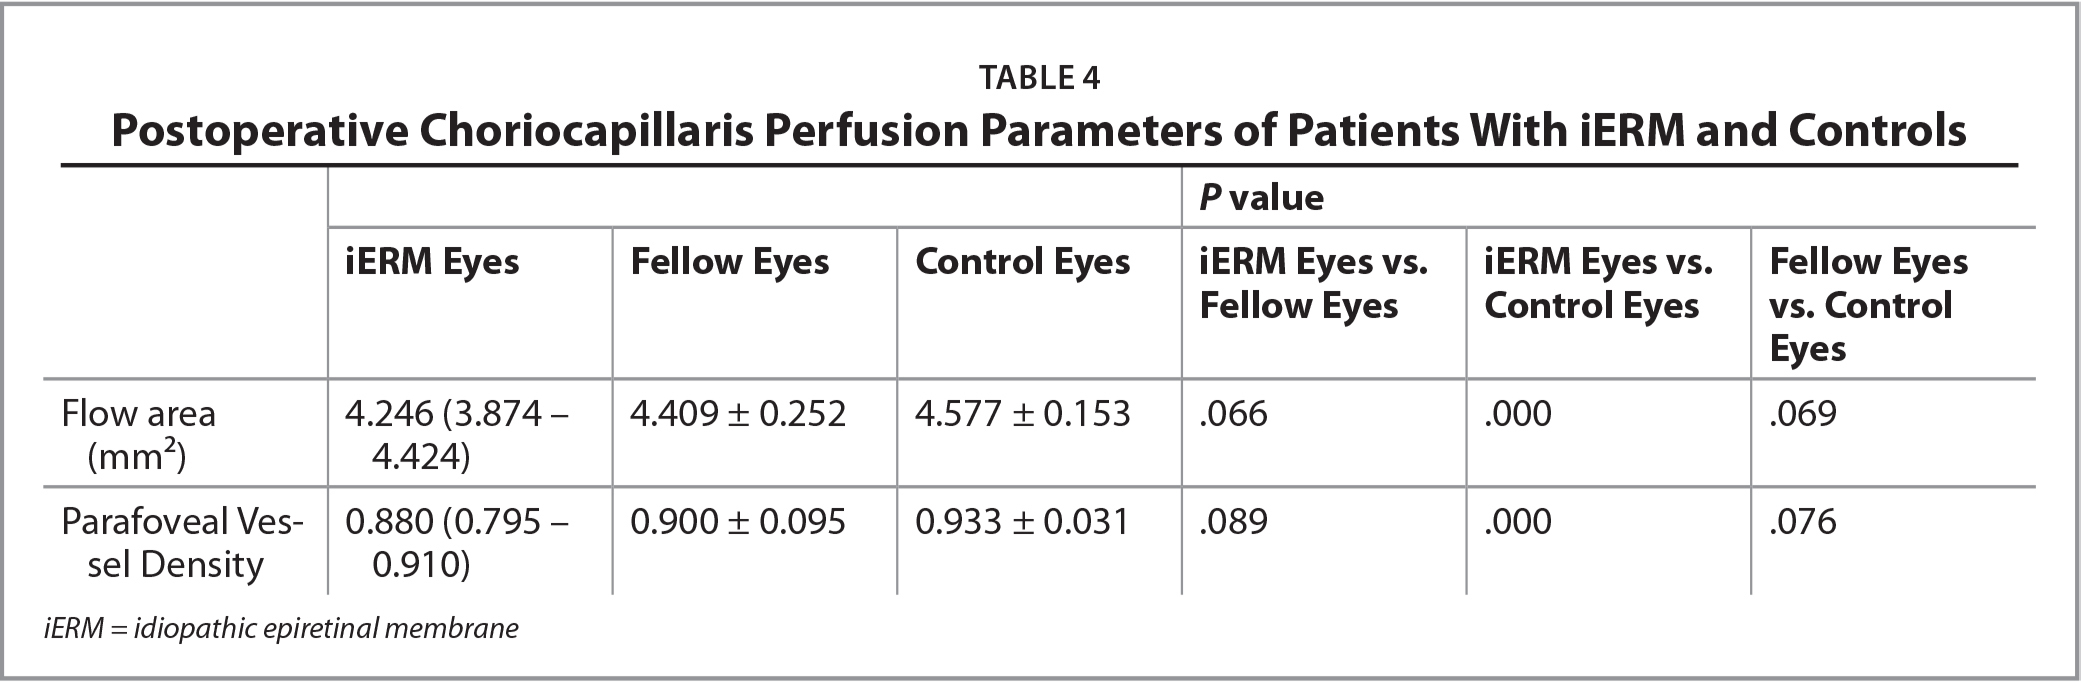 Postoperative Choriocapillaris Perfusion Parameters of Patients With iERM and Controls